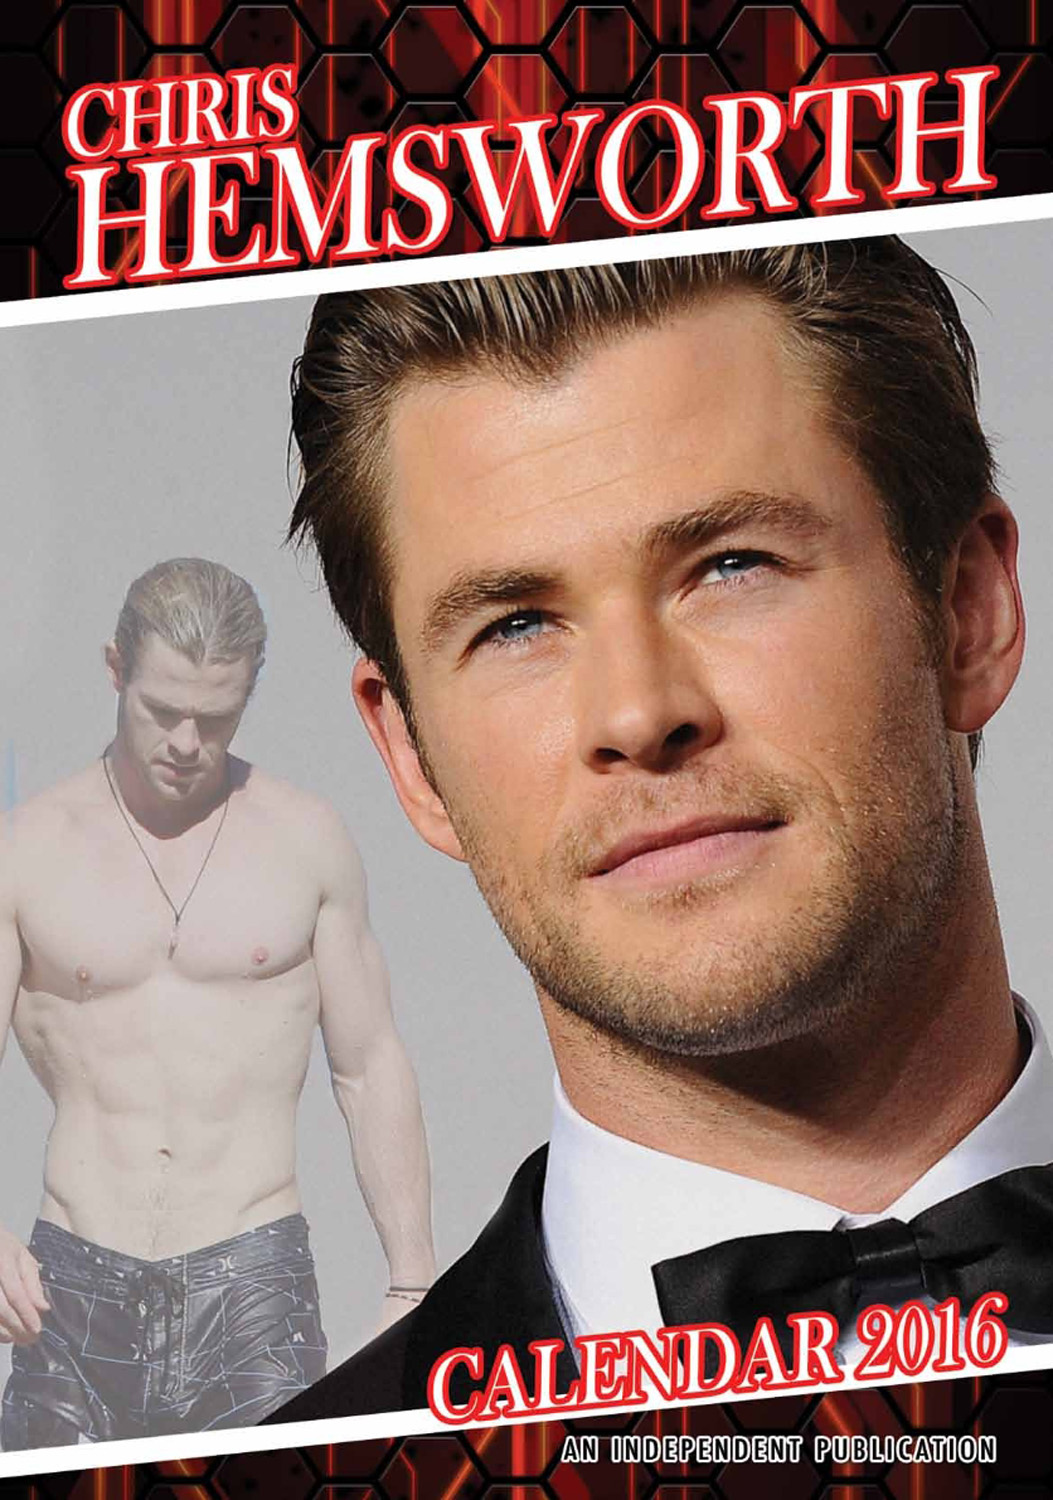 Chris Hemsworth Celebrity Wall Calendar 2016  9788898521661